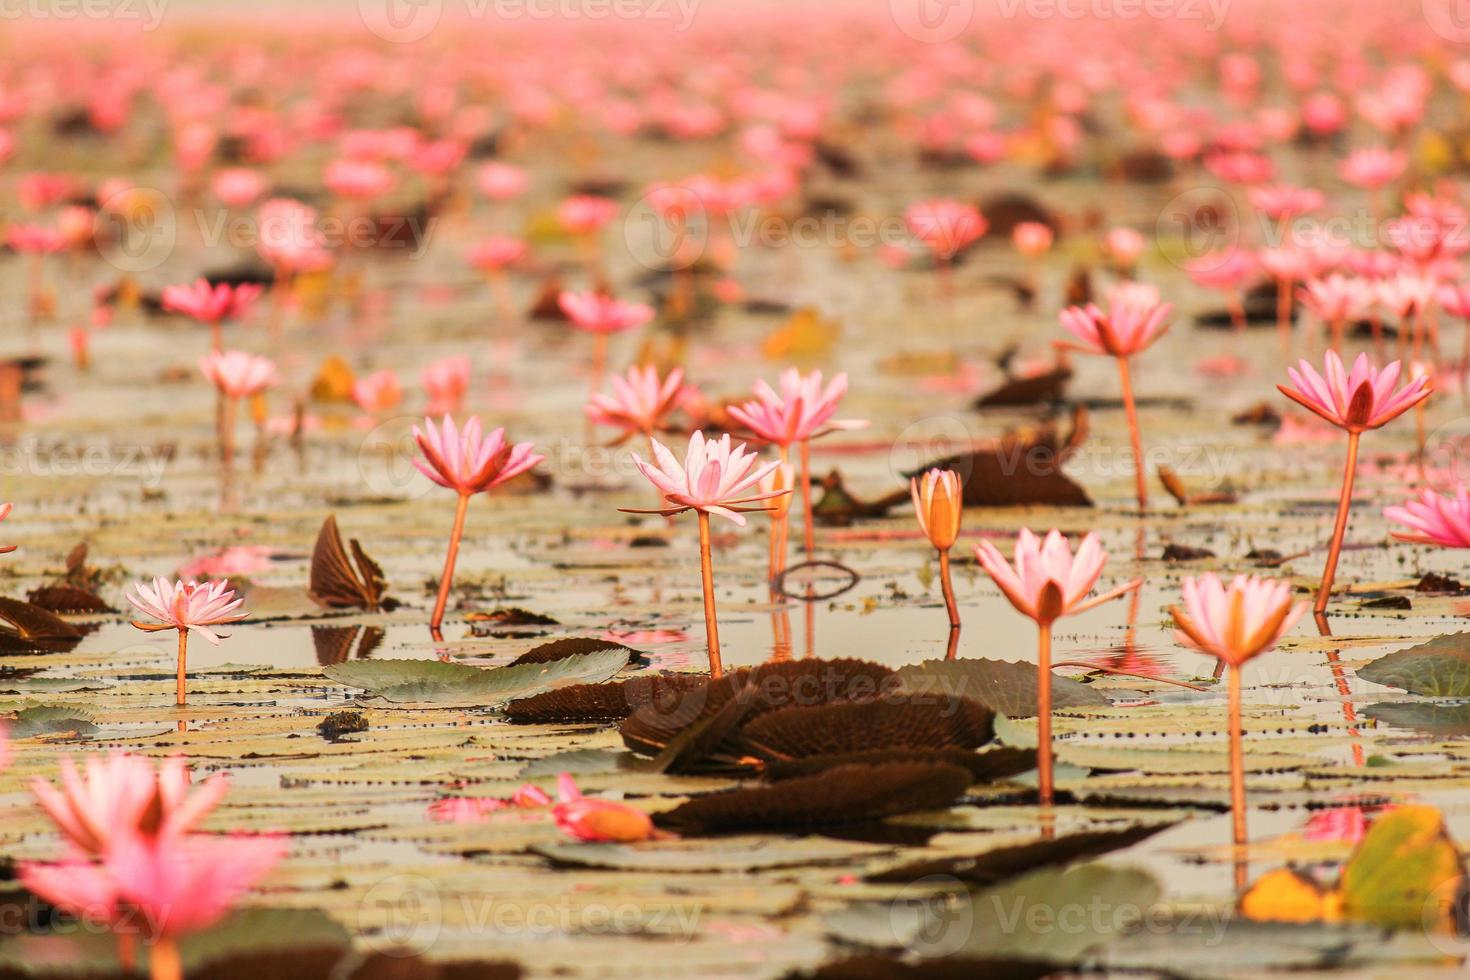 Red lotus in the pond at Kumphawapi, Udonthani, Thailand photo